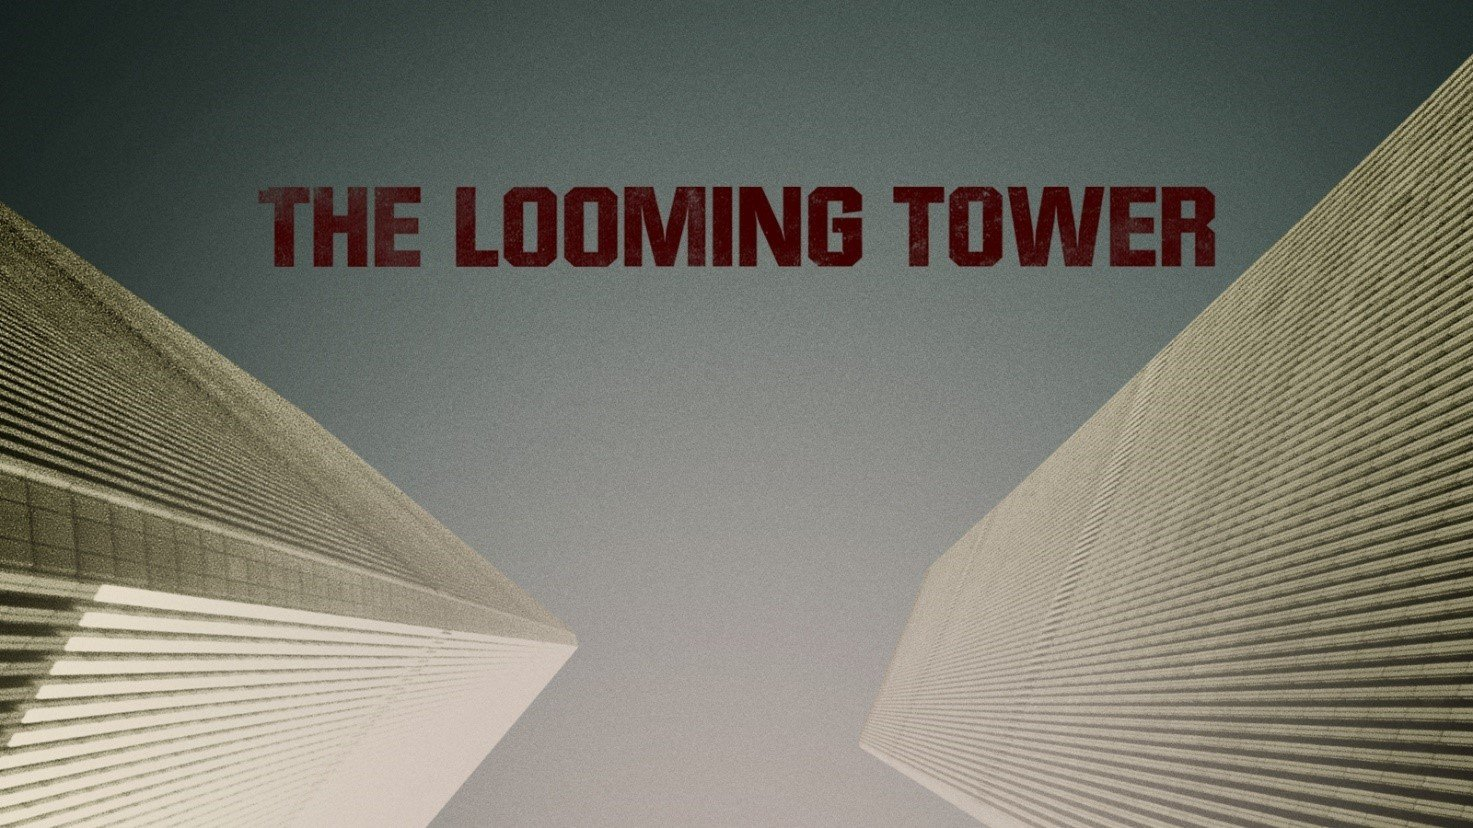 The Looming Tower Amazon